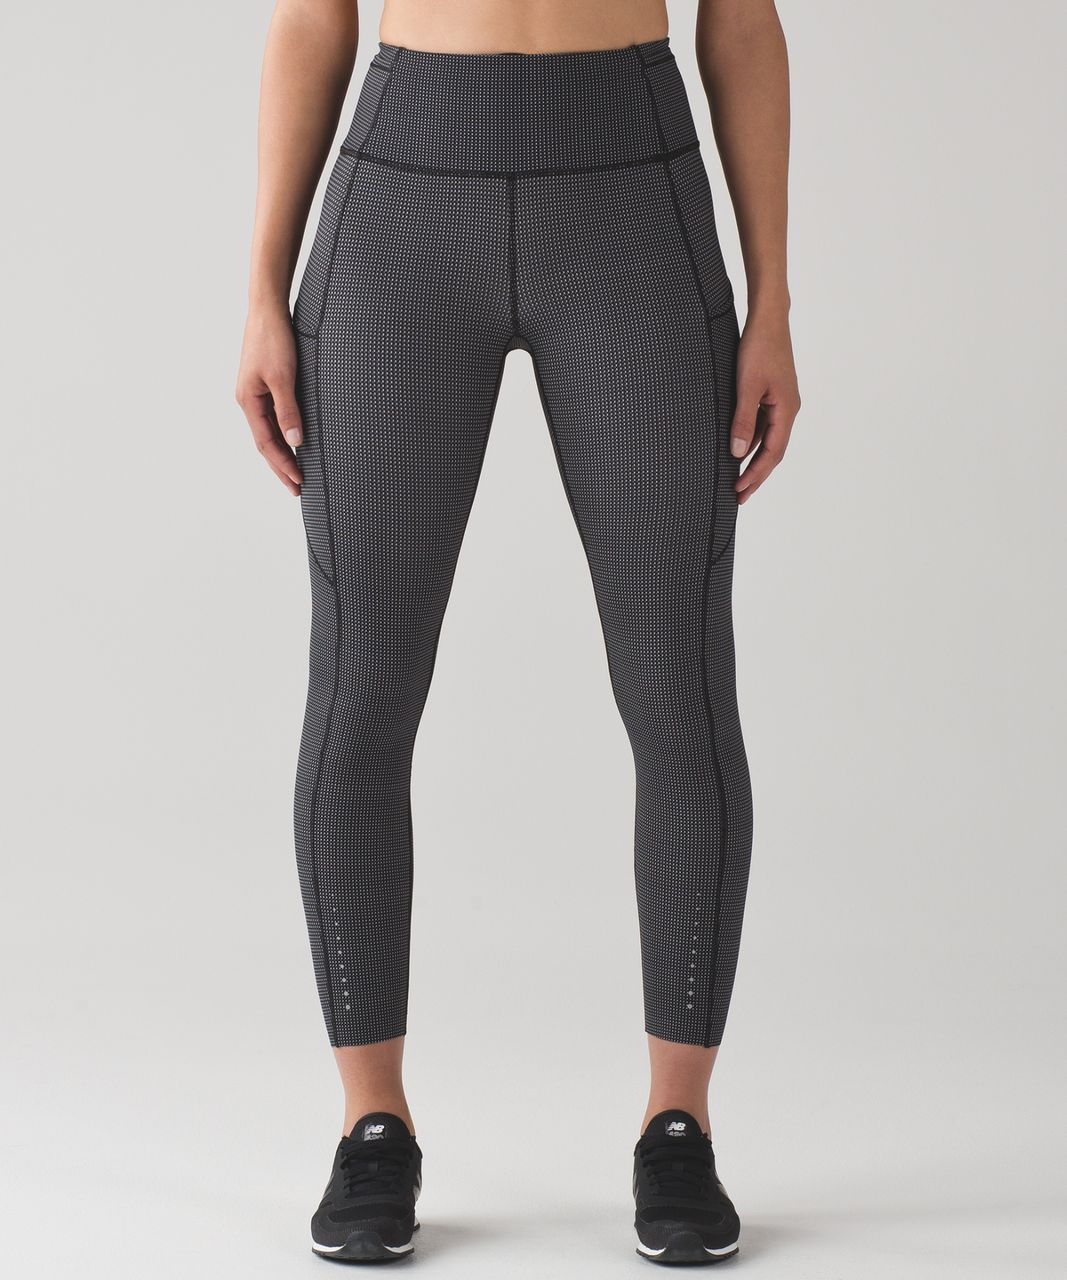 Lululemon Fast And Free 7/8 Tight - Teeny Check Print White Black